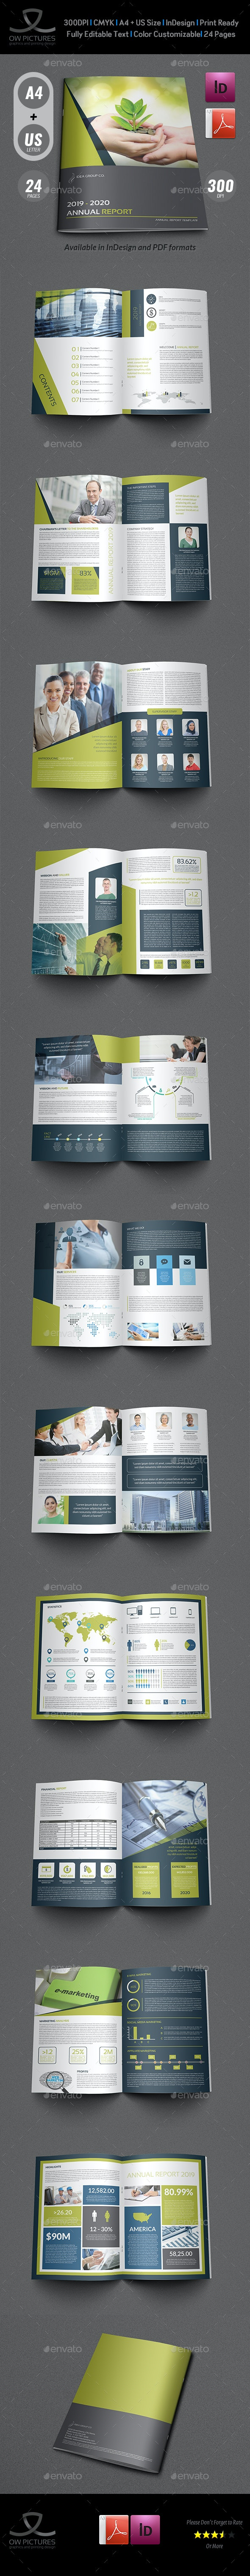 Annual Report Brochure Template  - 24 Pages - Brochures Print Templates